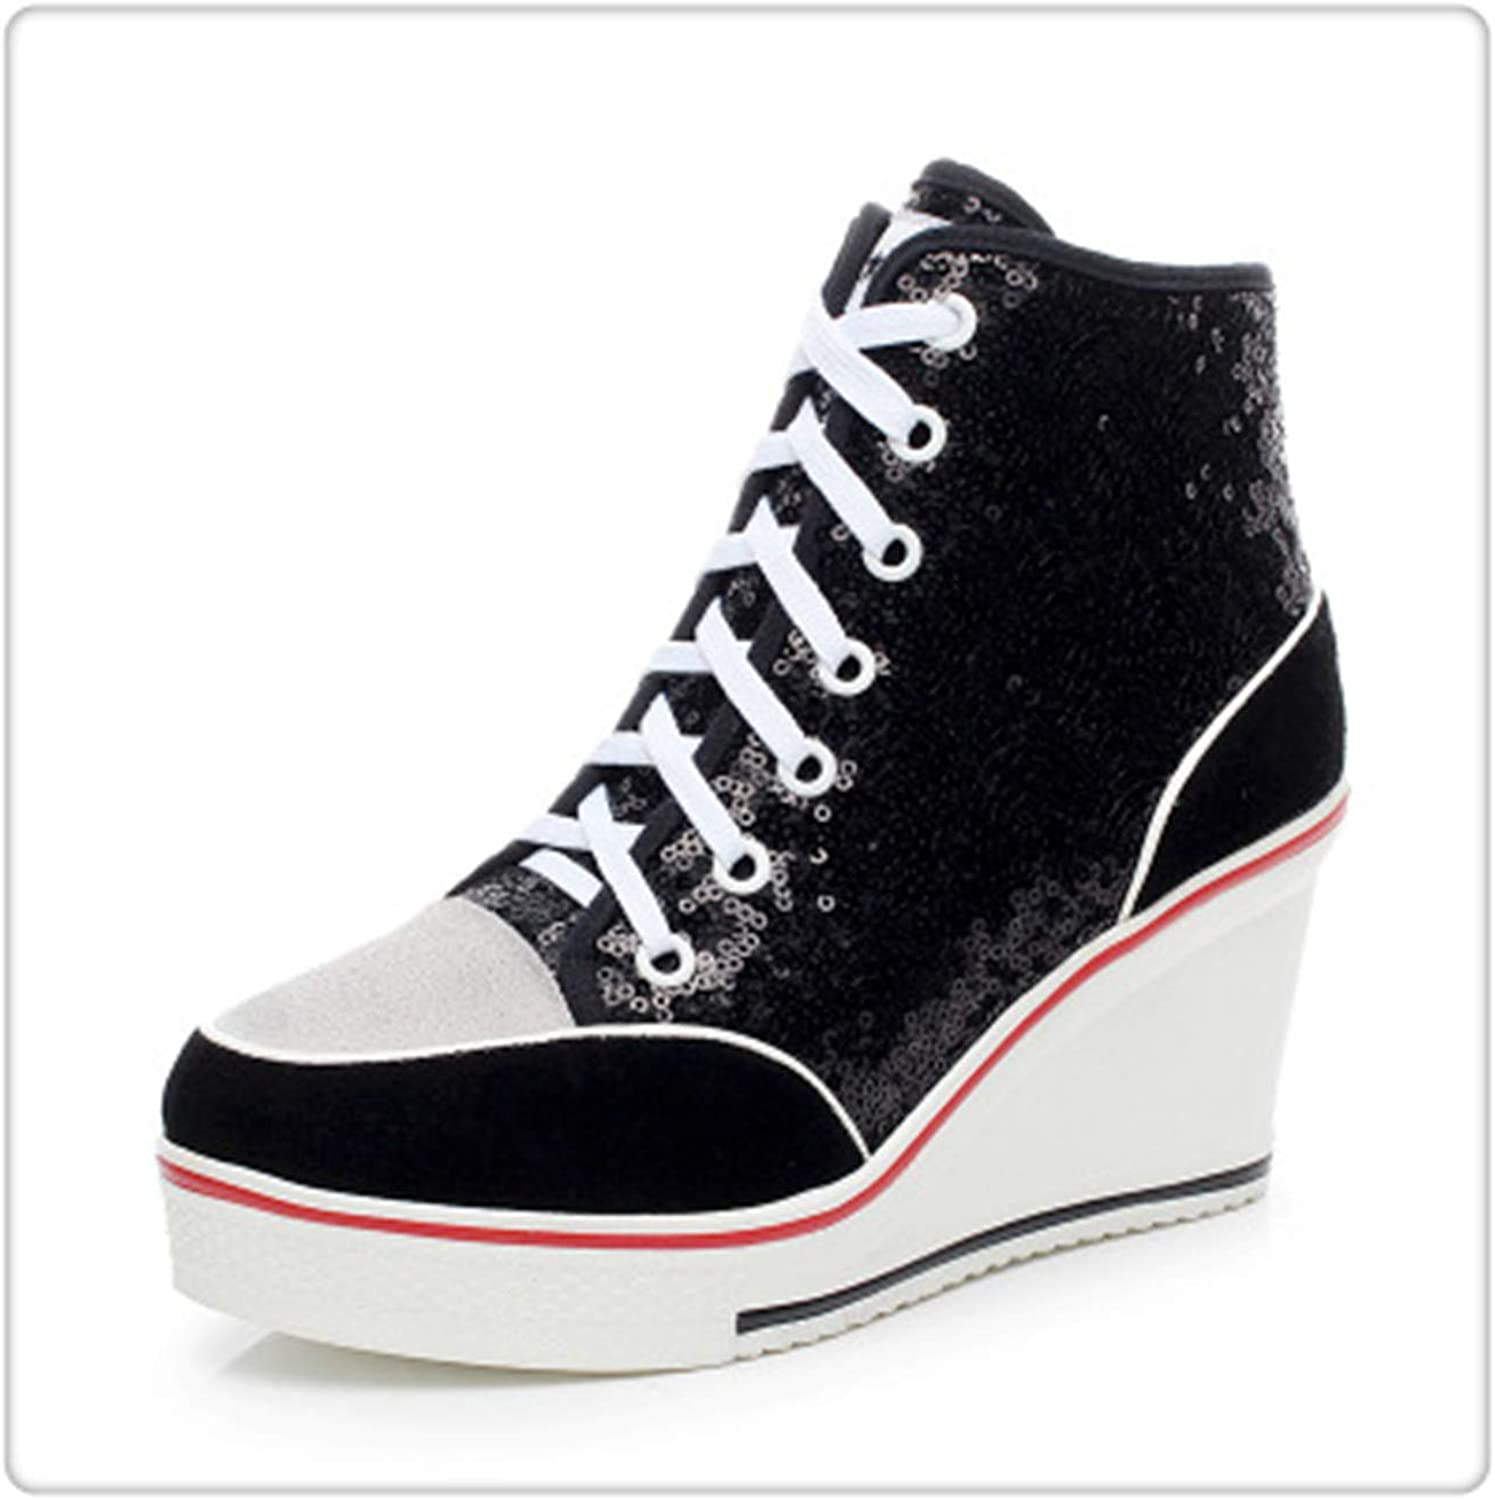 NNHLPO& Women Badge Wedges High Top Platform shoes Woman Sneakers Casual Trainers Elevator shoes High Heels Canvas shoes Glitter Black 8.5